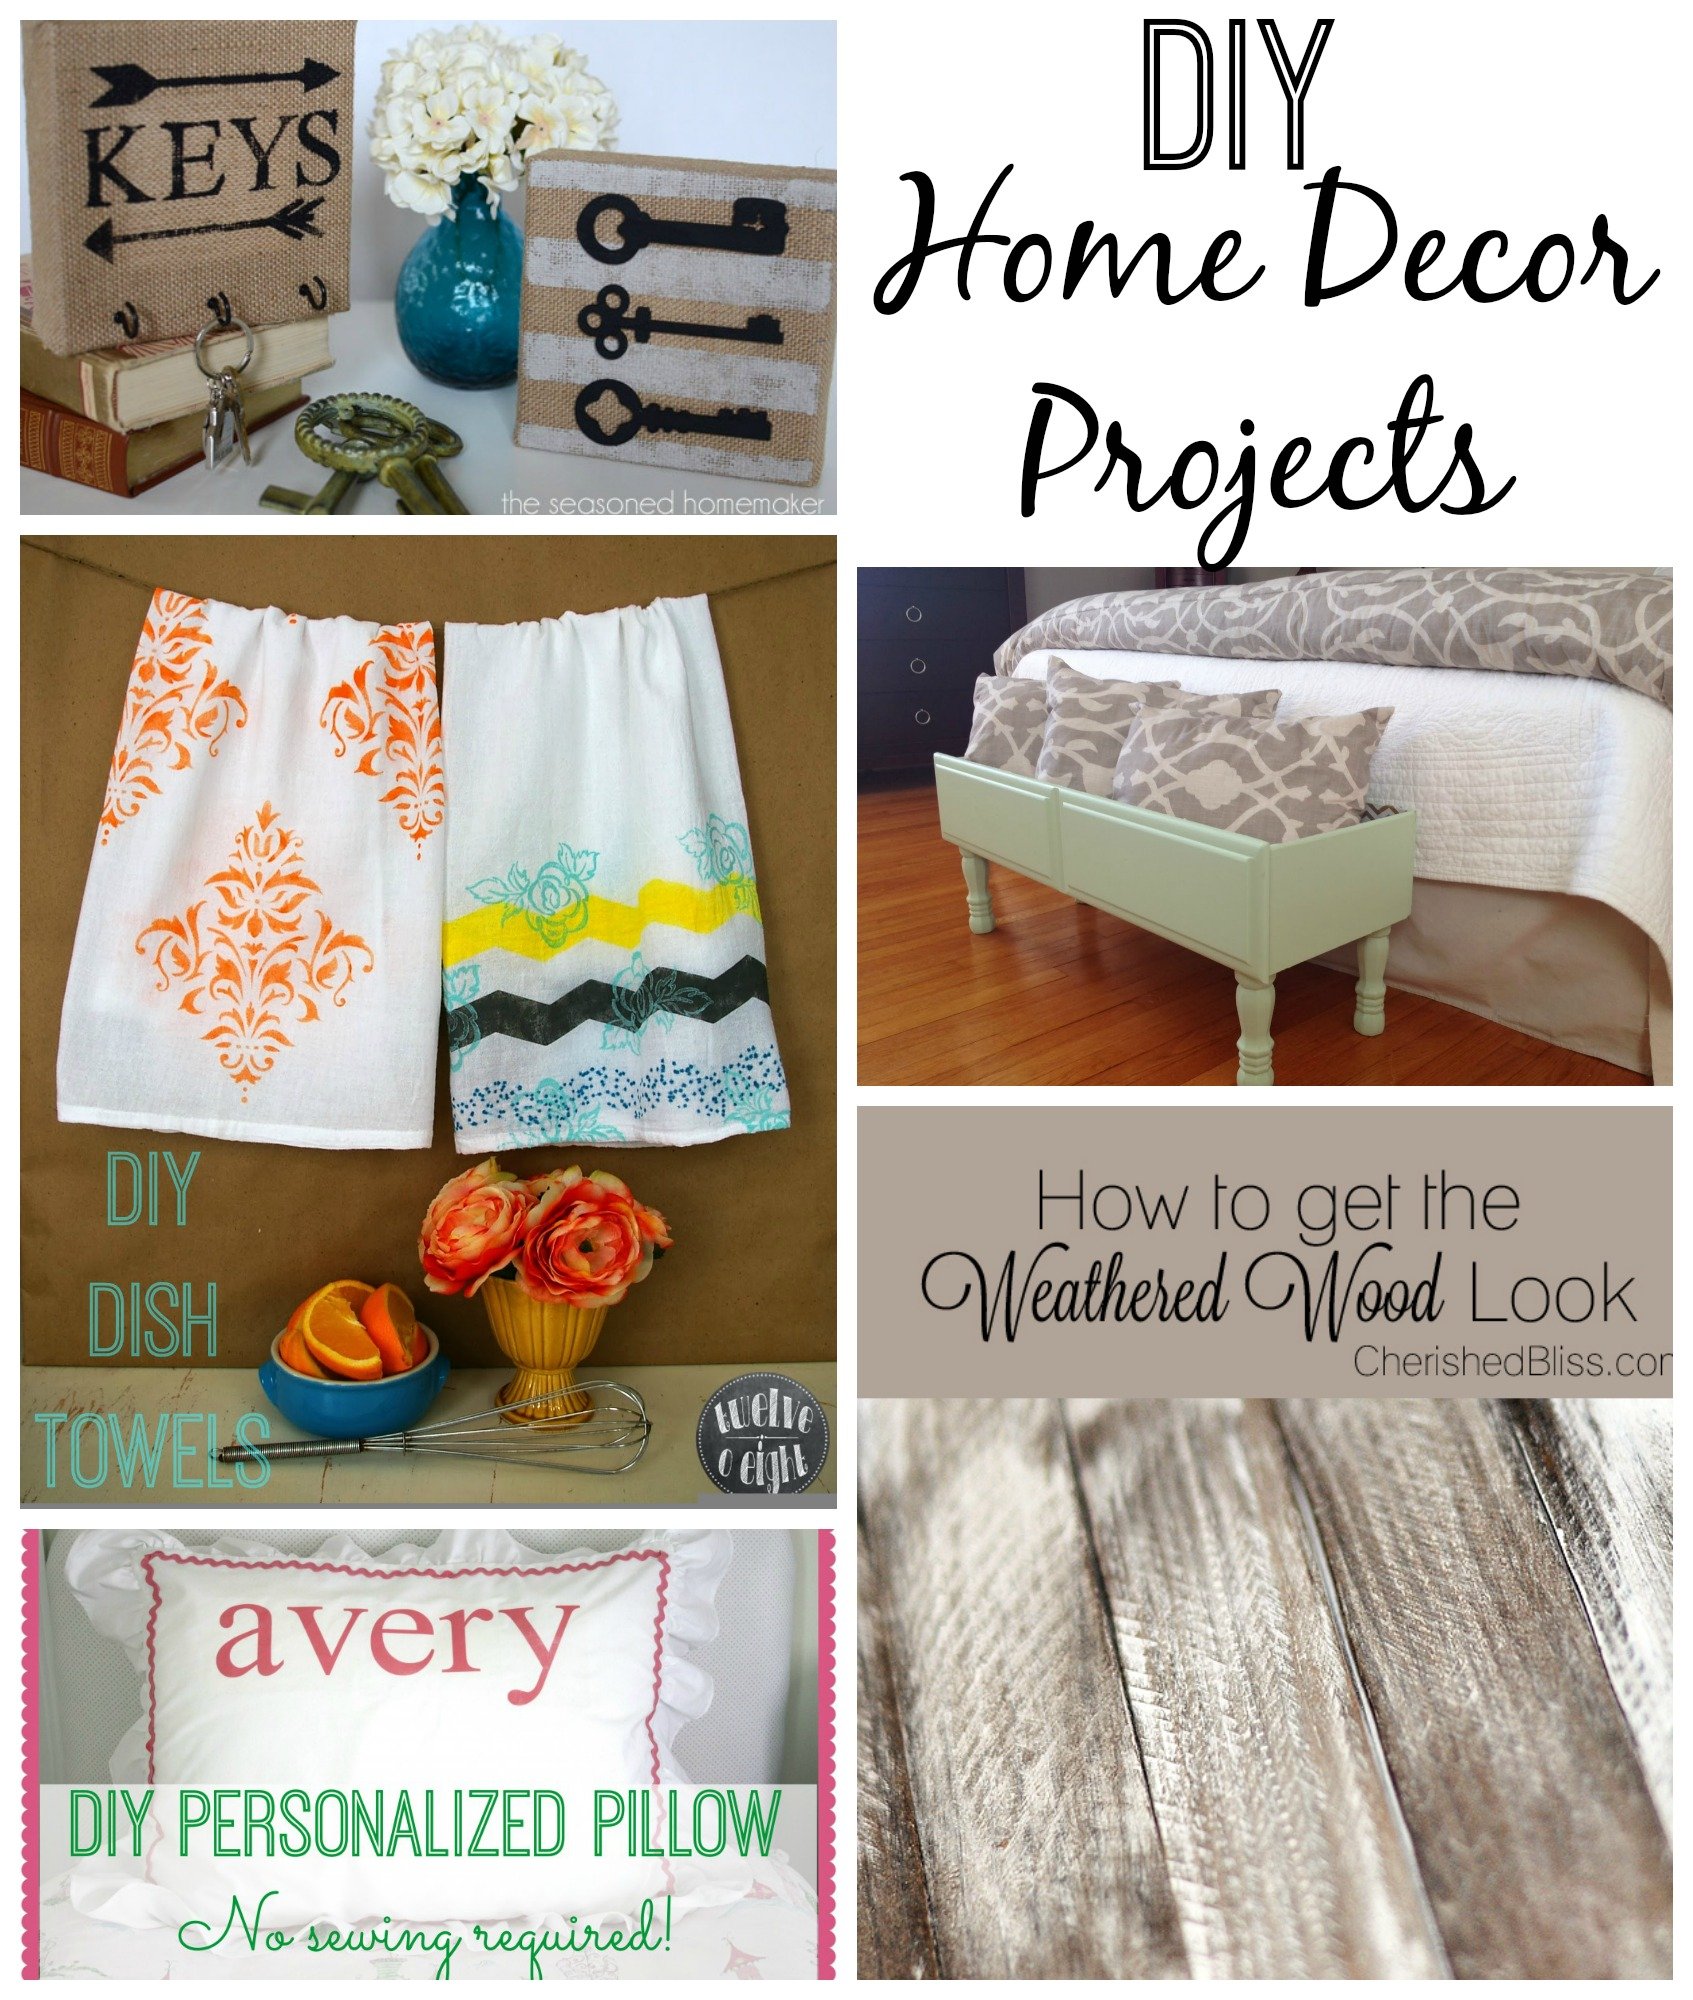 DIY-Home-Decor-Projects.jpg